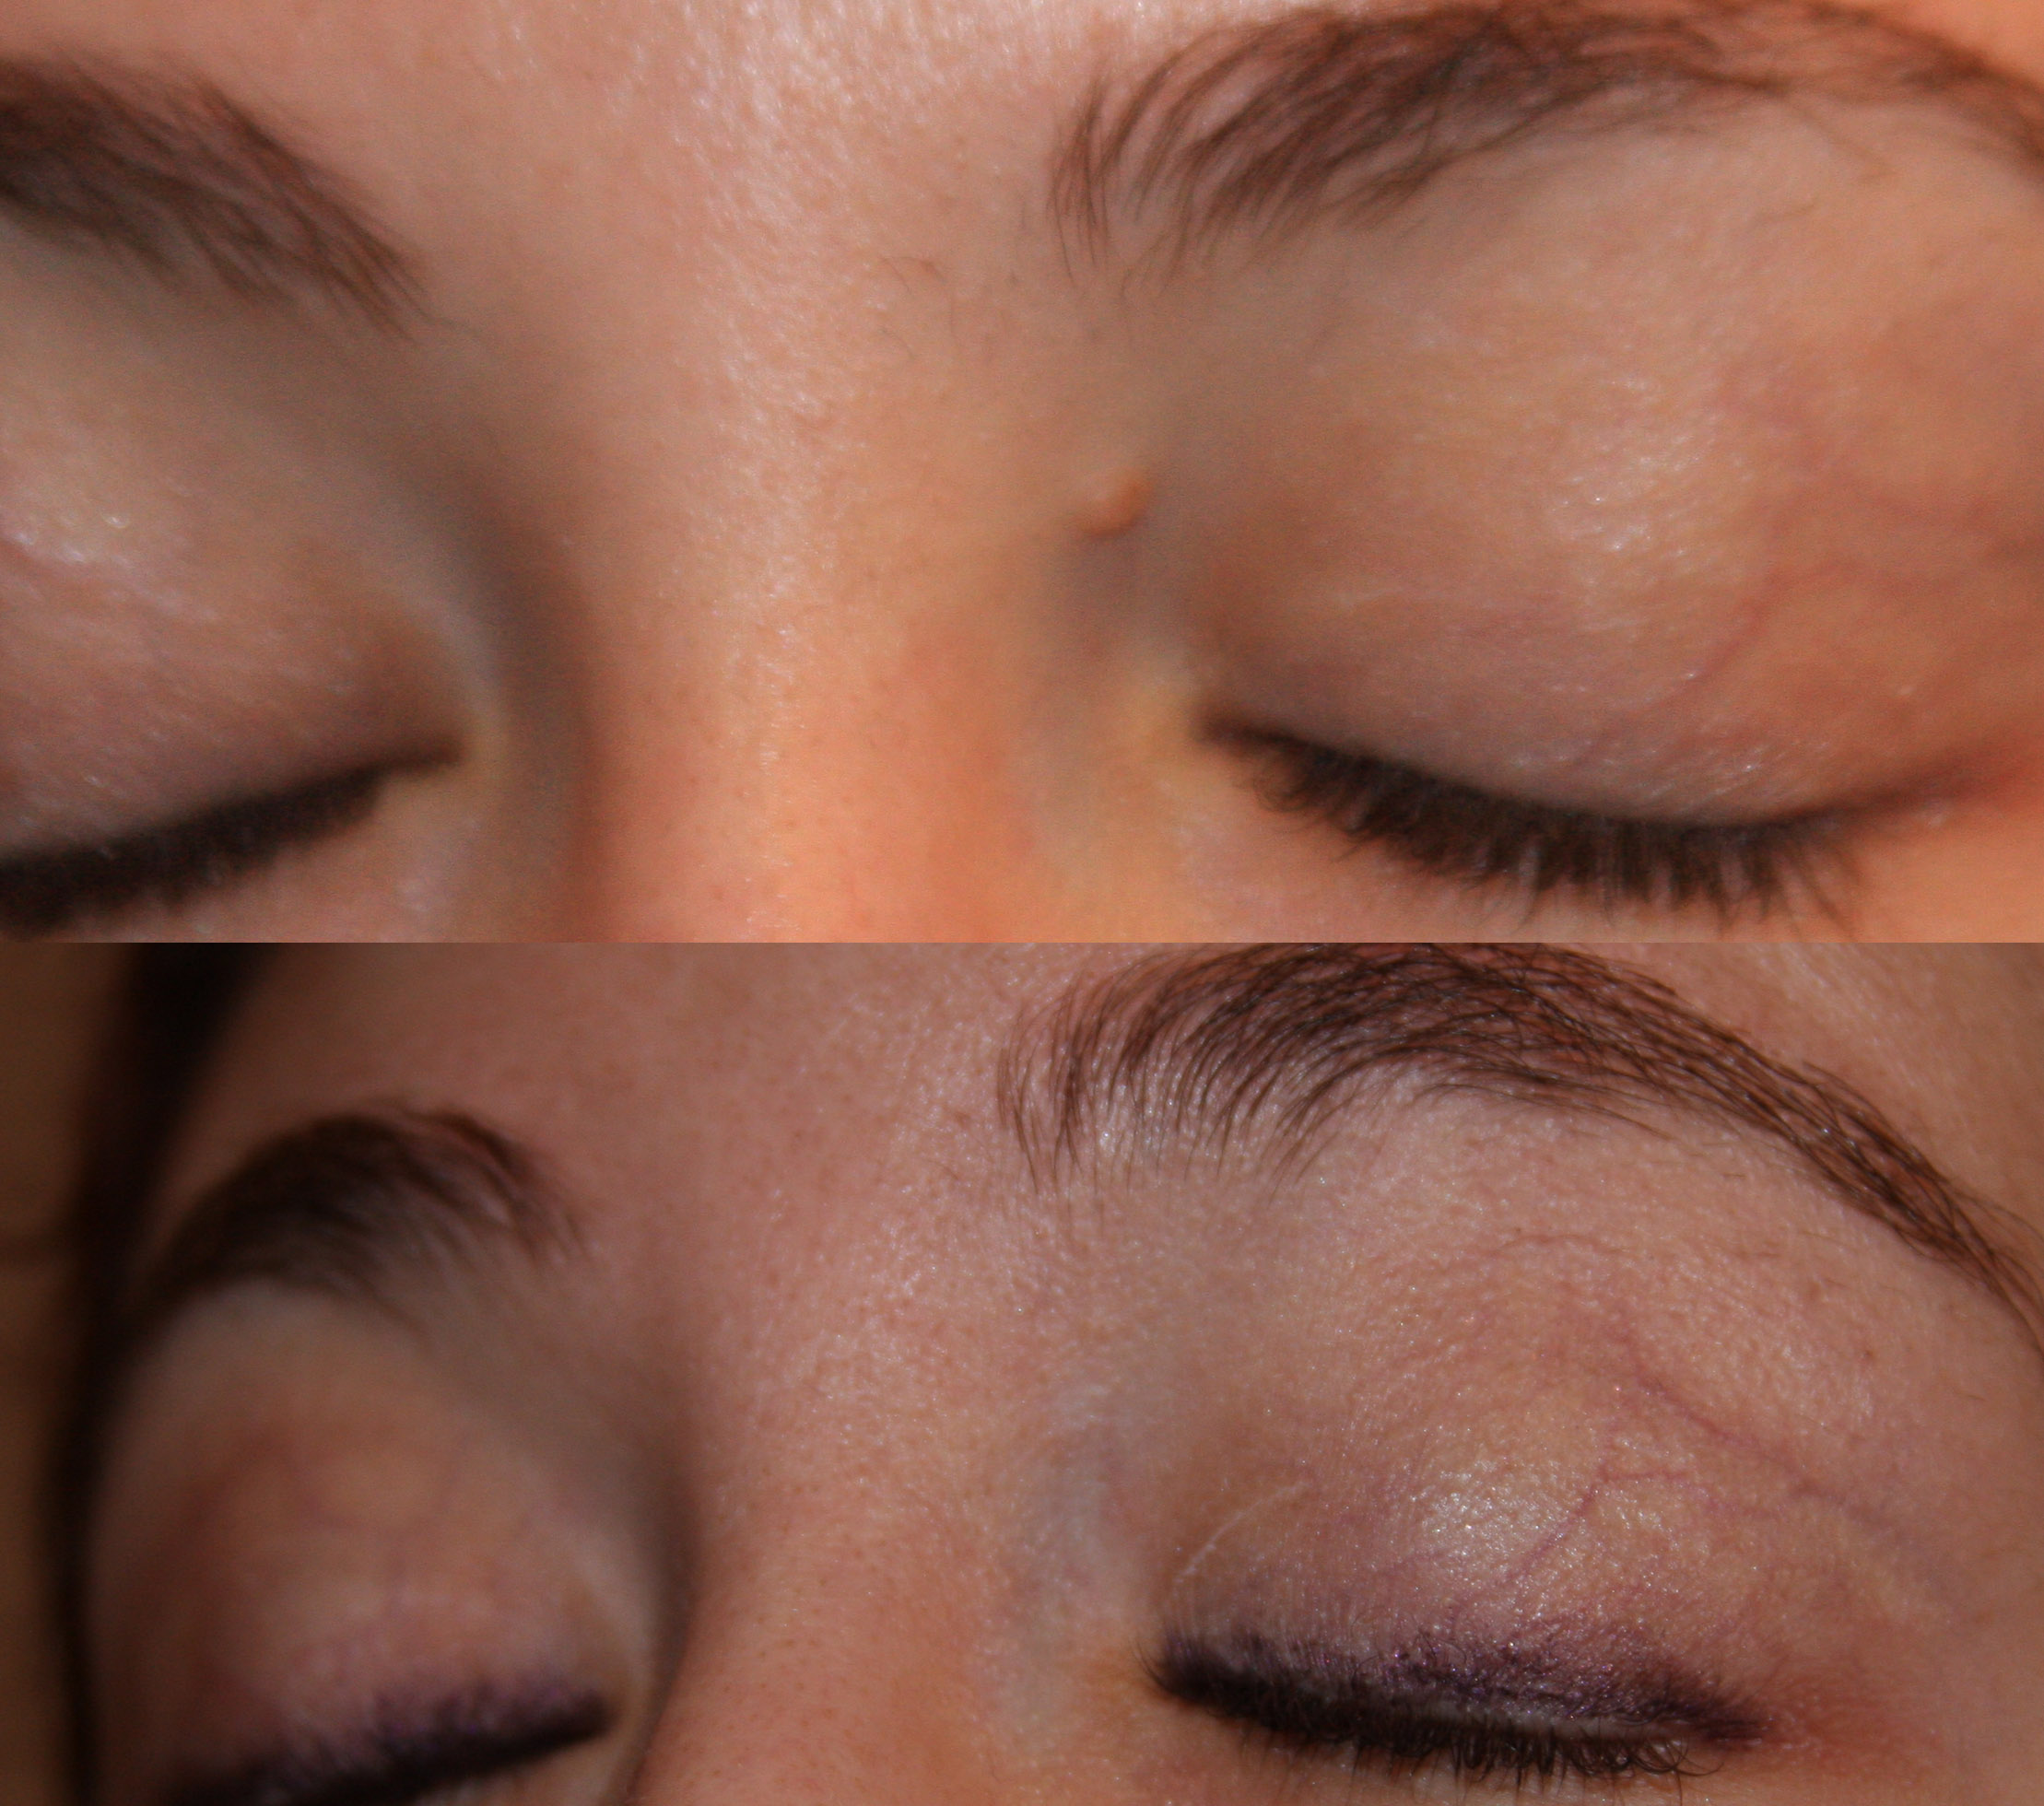 warts and moles before and after